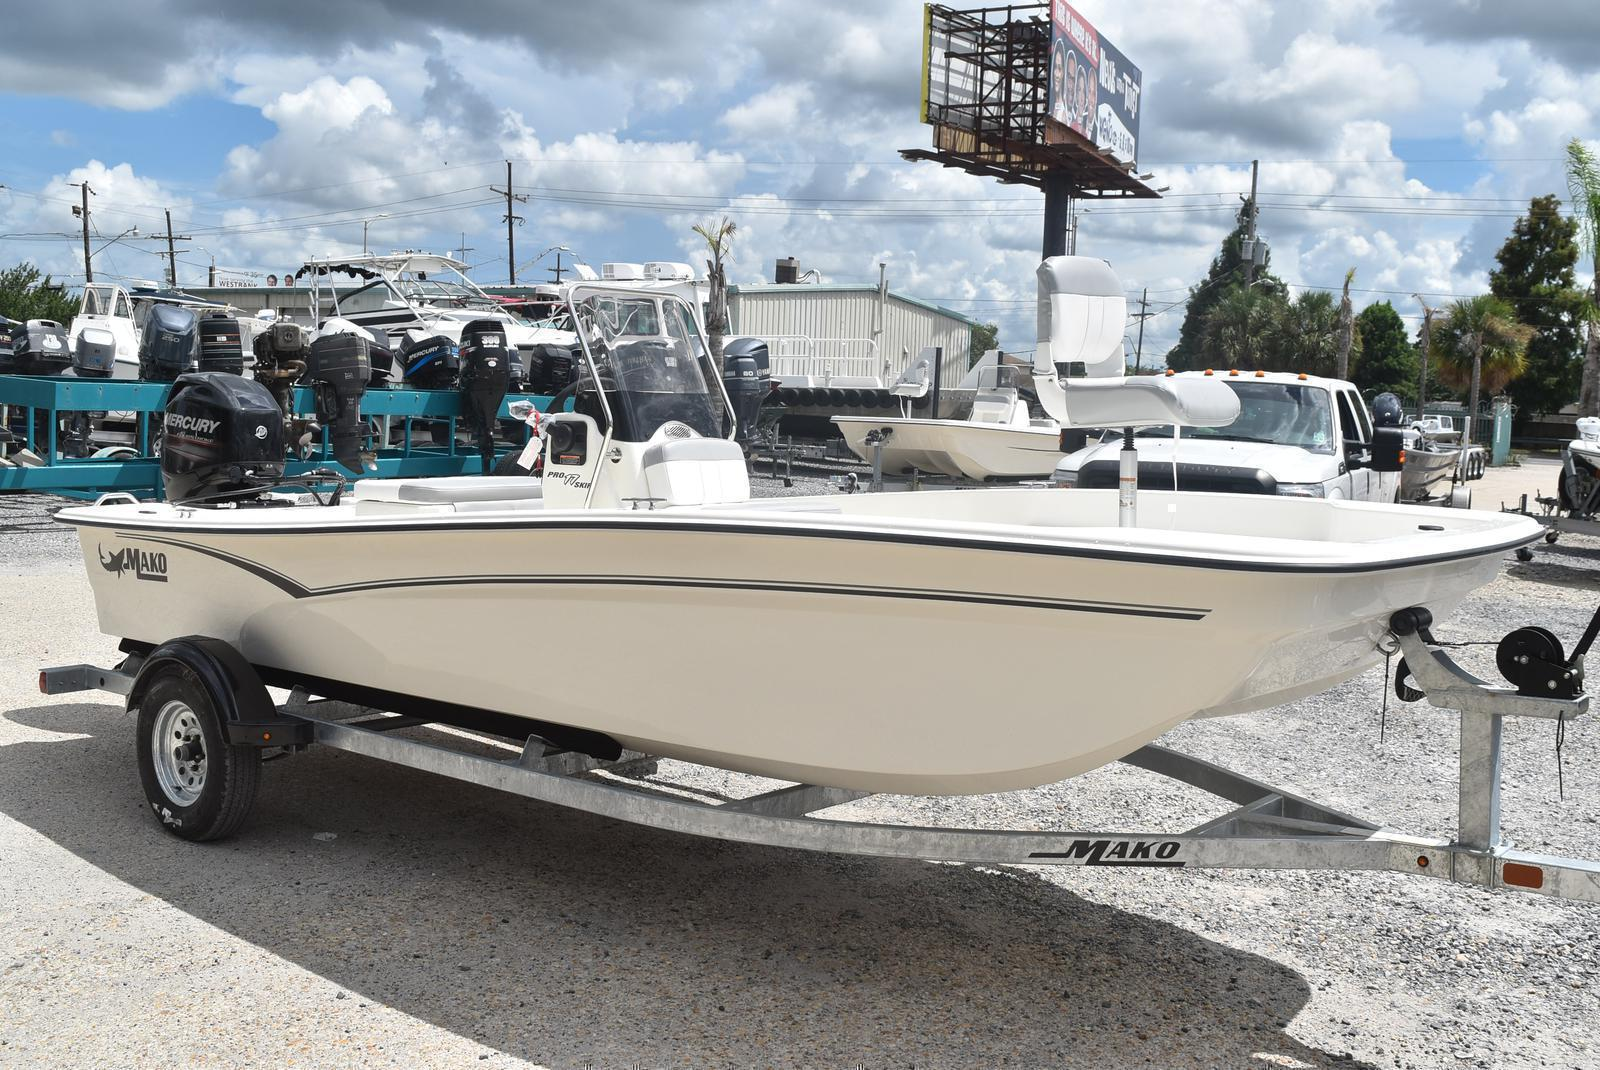 2020 Mako boat for sale, model of the boat is Pro Skiff 17, 75 ELPT & Image # 680 of 702